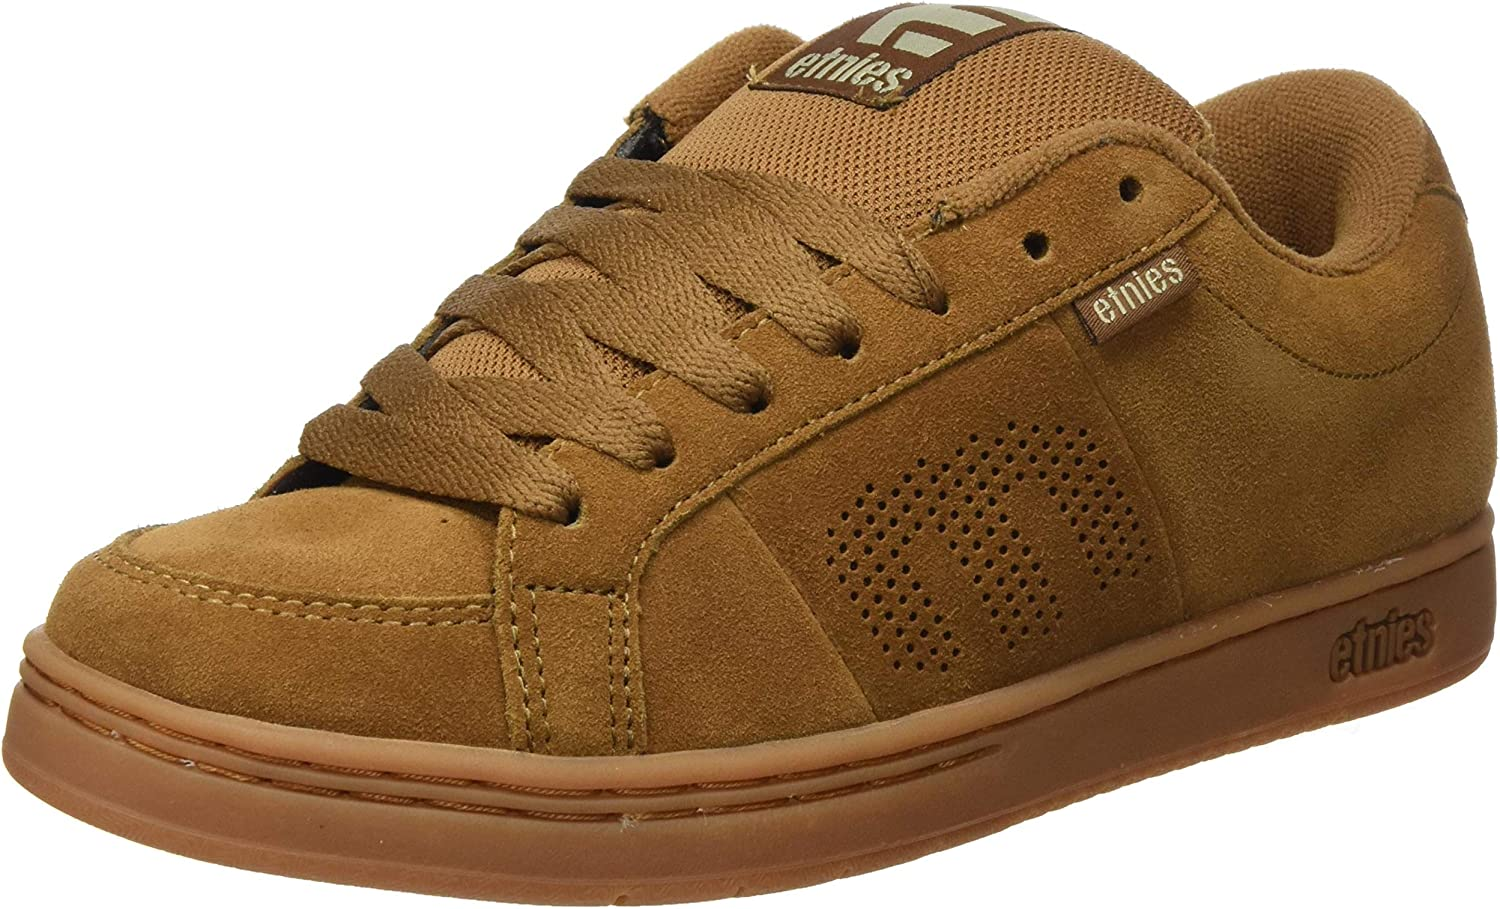 Etnies Men's Kingpin Skate Shoe: Shoes